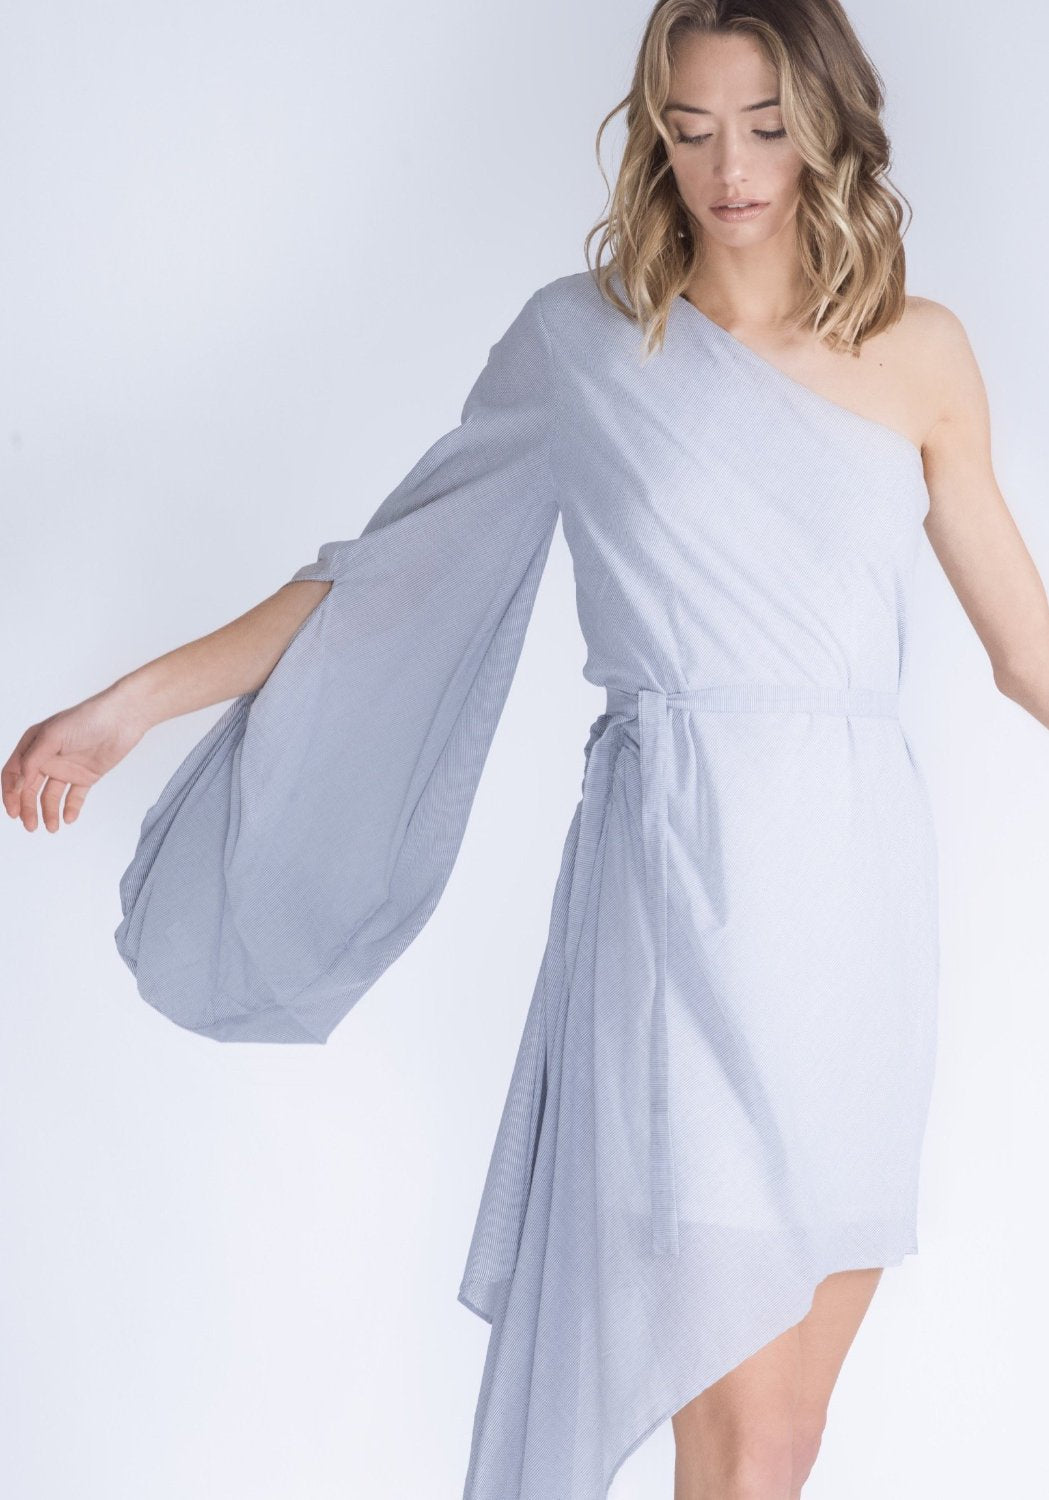 CATELYN One Shoulder Dress